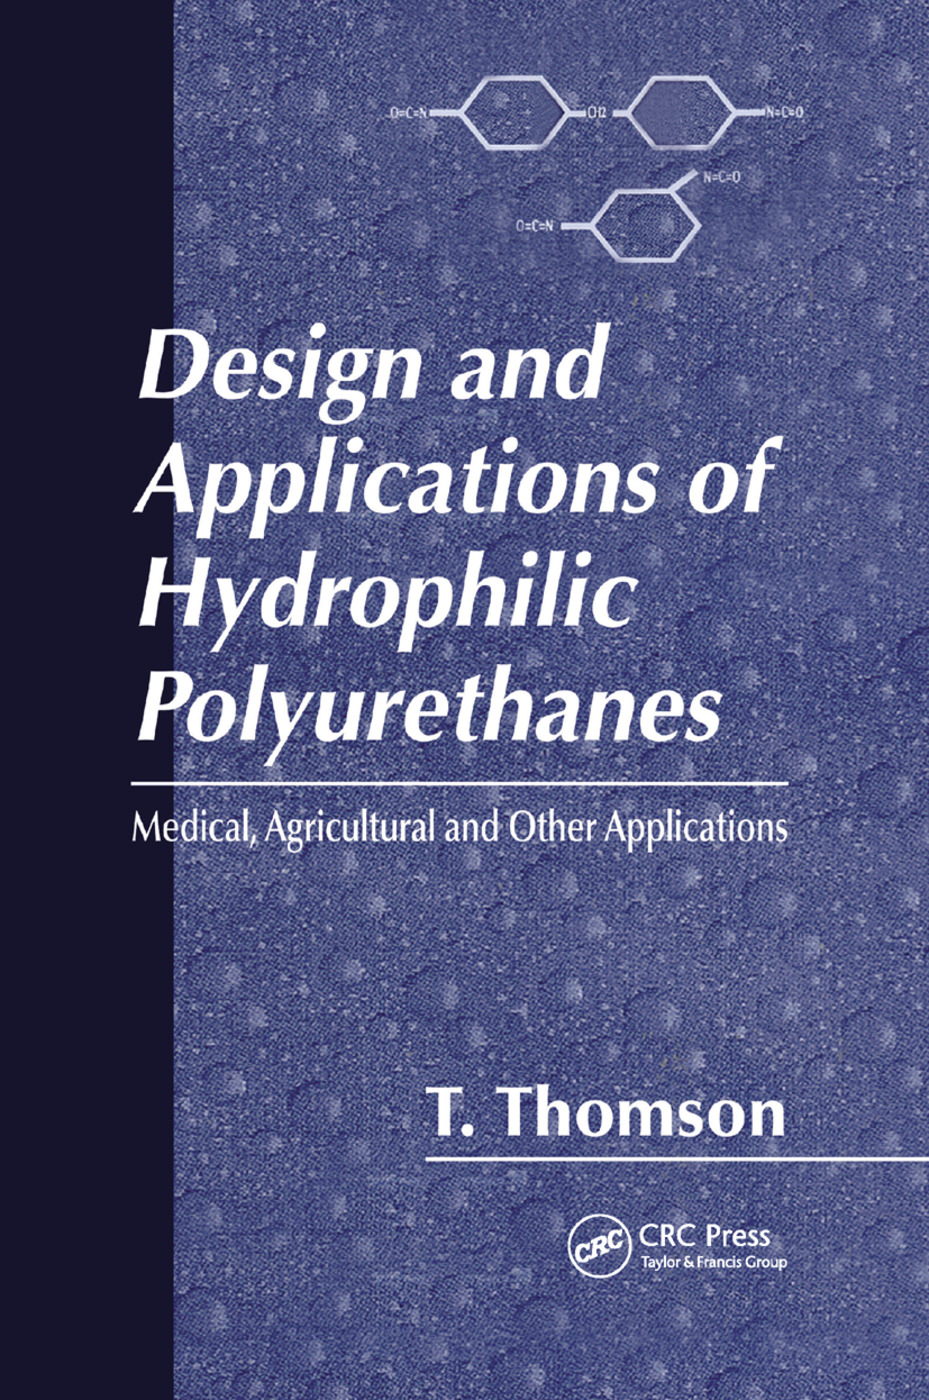 Design and Applications of Hydrophilic Polyurethanes: 1st Edition (Paperback) book cover